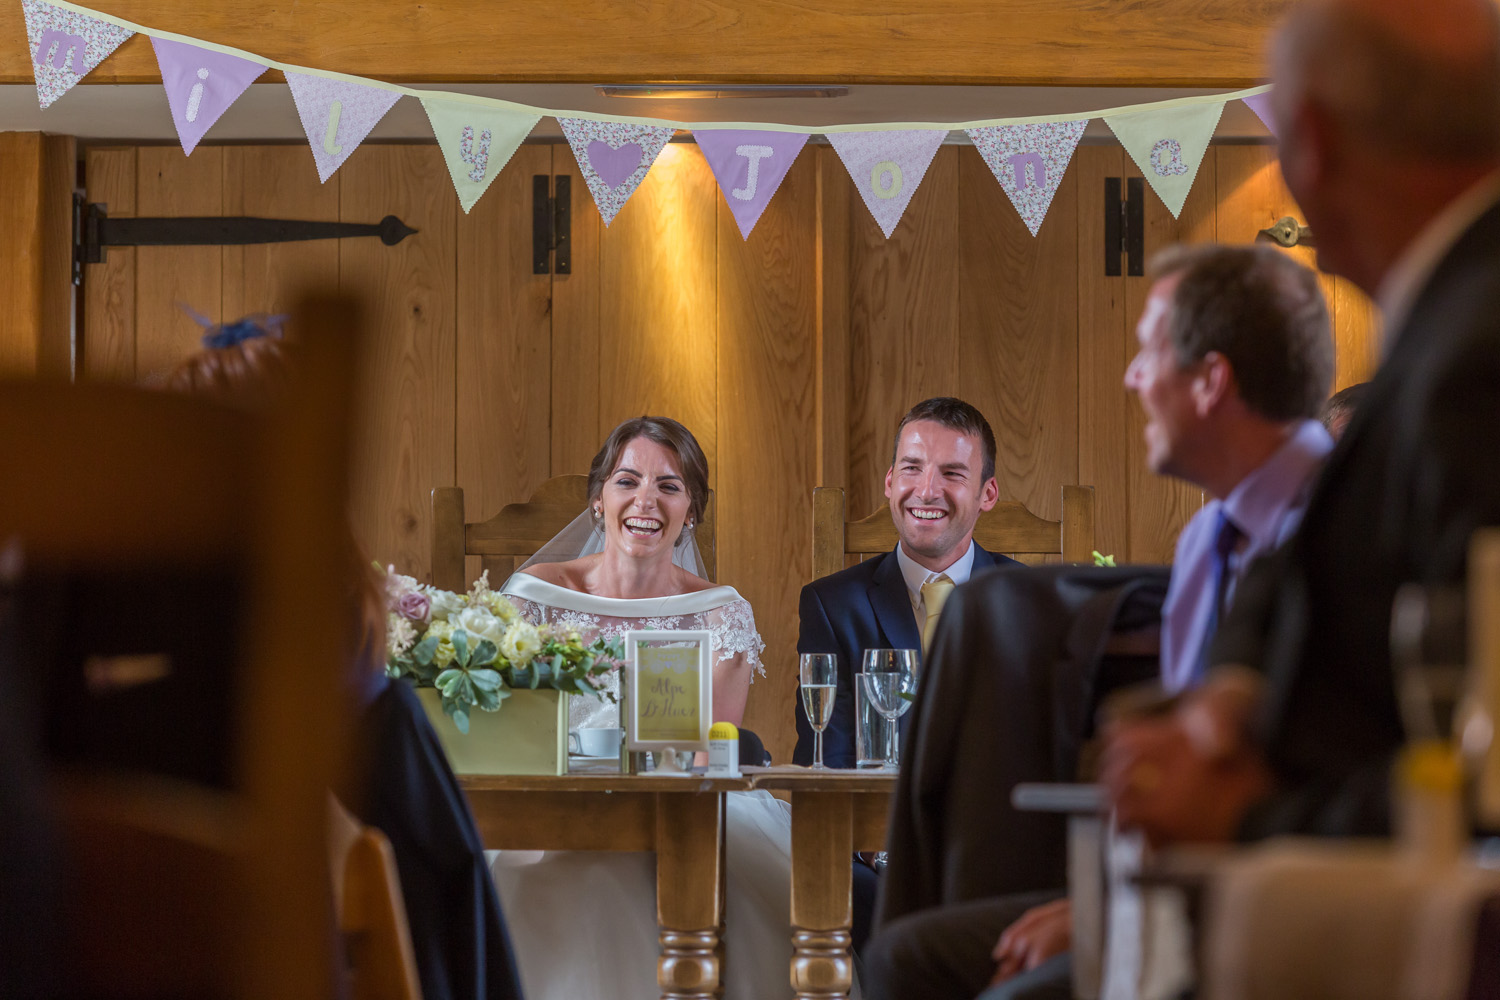 barn-brynich-wedding-photographer-brecon-wales-104.jpg